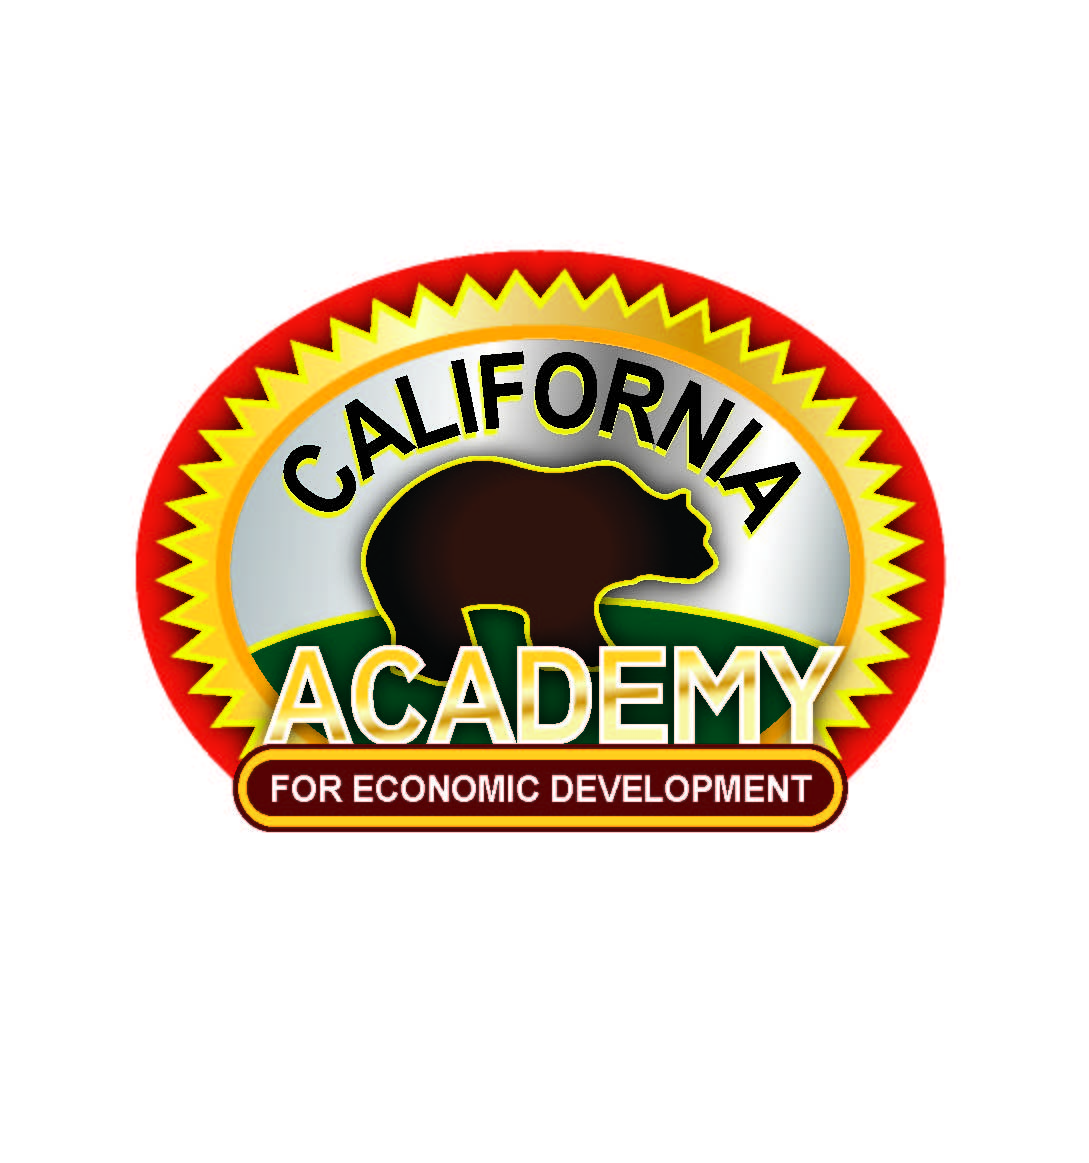 The California Academy for Economic Development (CAED)